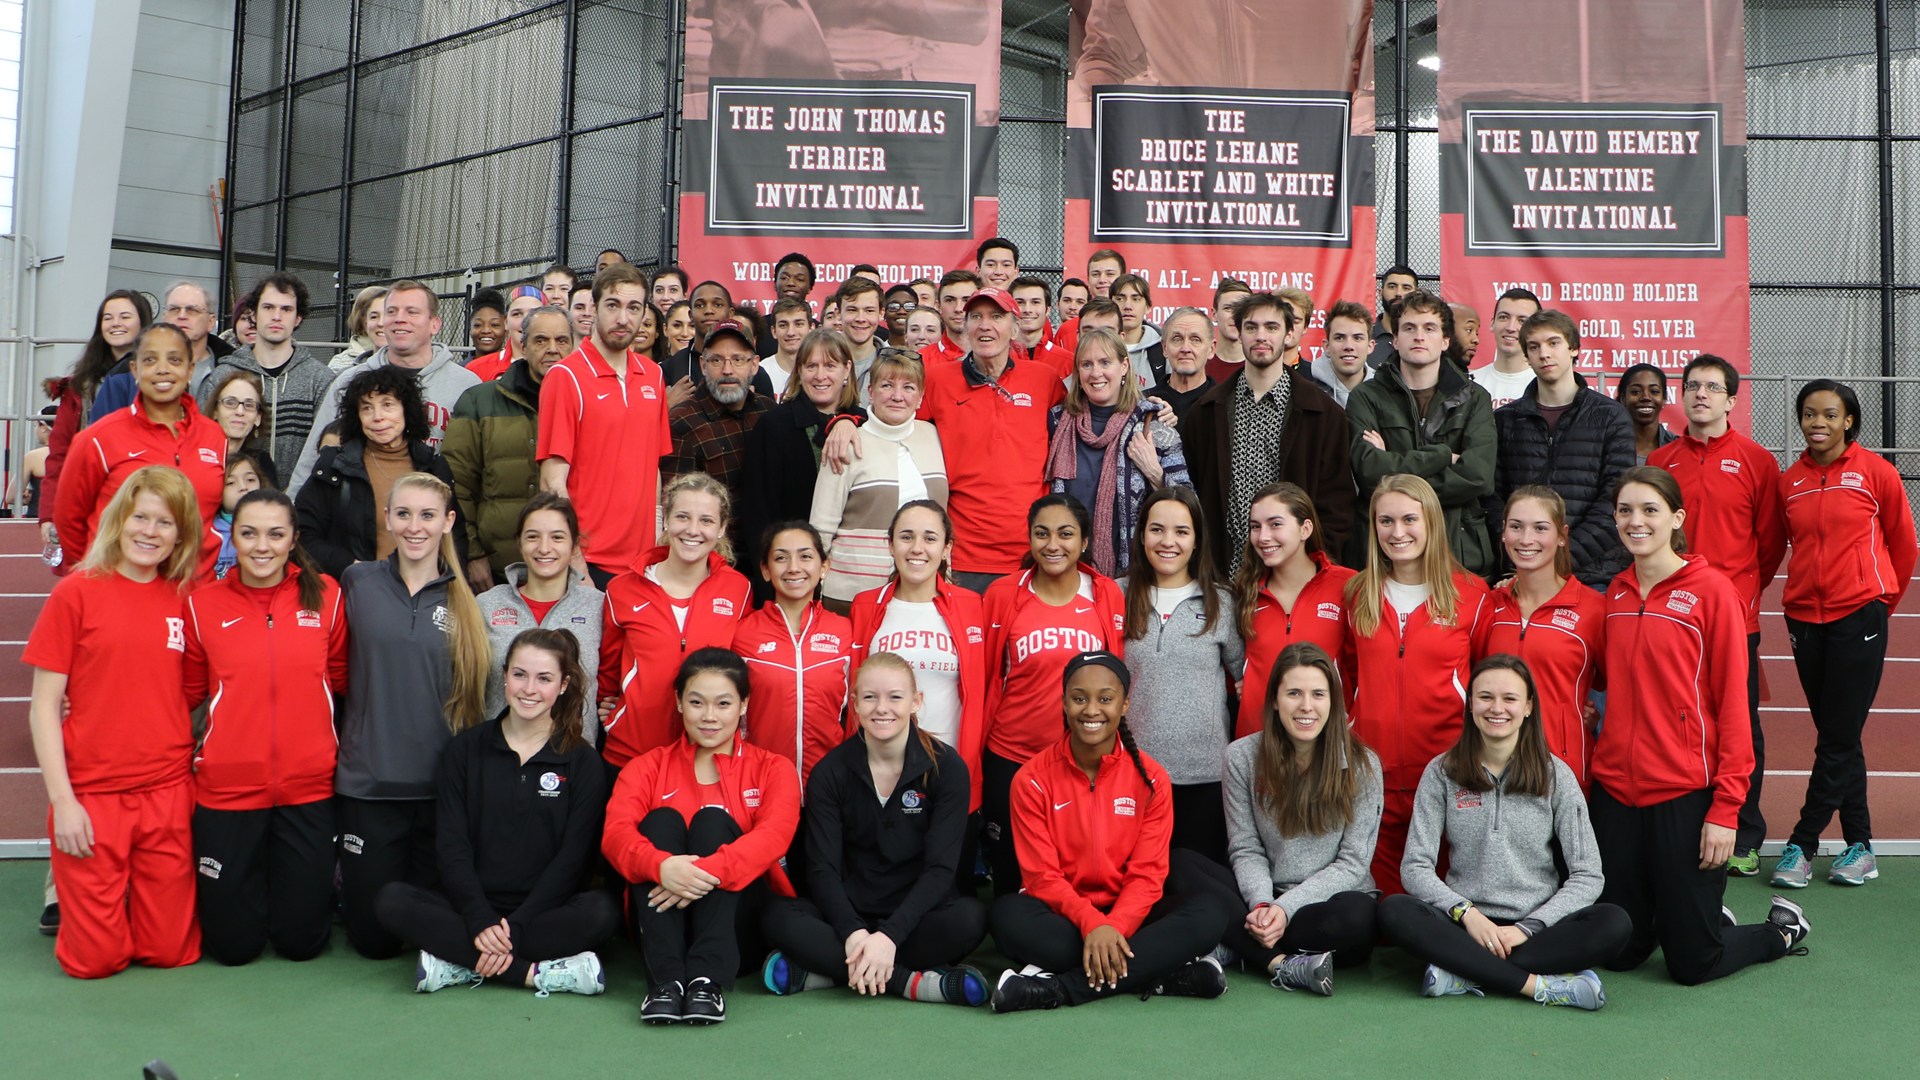 Terriers Compete at Bruce Lehane Scarlet & White Invitational